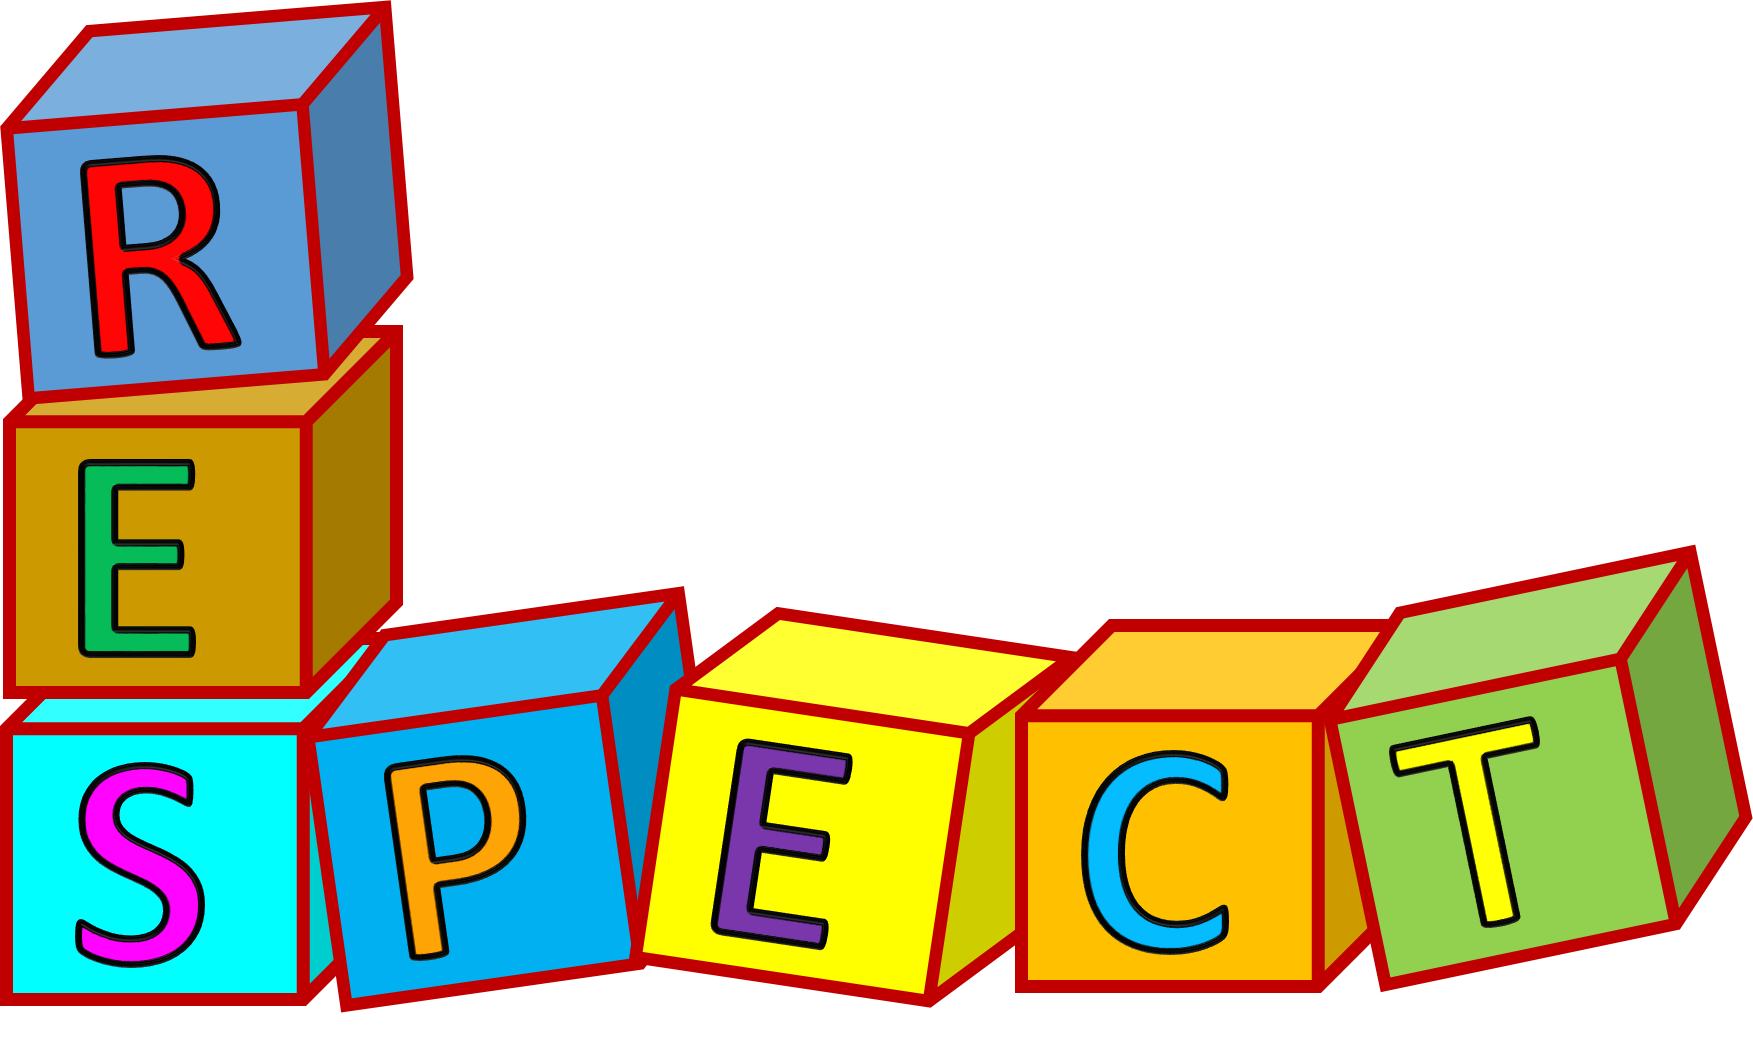 Https Openclipart Org Image 800px Svg To-Https Openclipart Org Image 800px Svg To Png 651 Ryanlerch Kids With-3